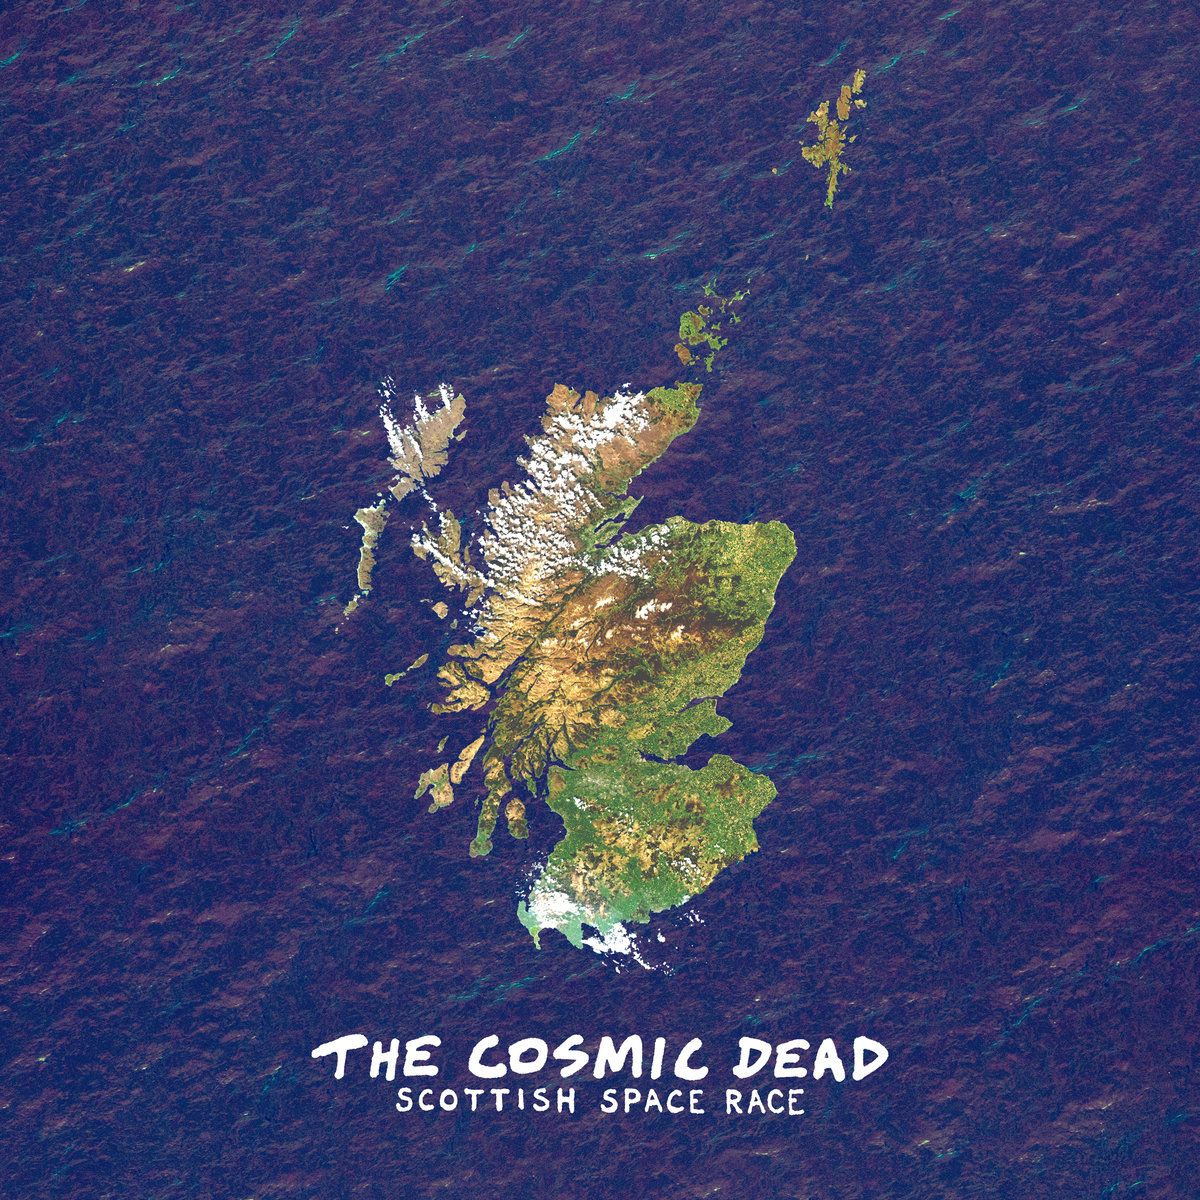 The Cosmic Dead - Scottish Space Race